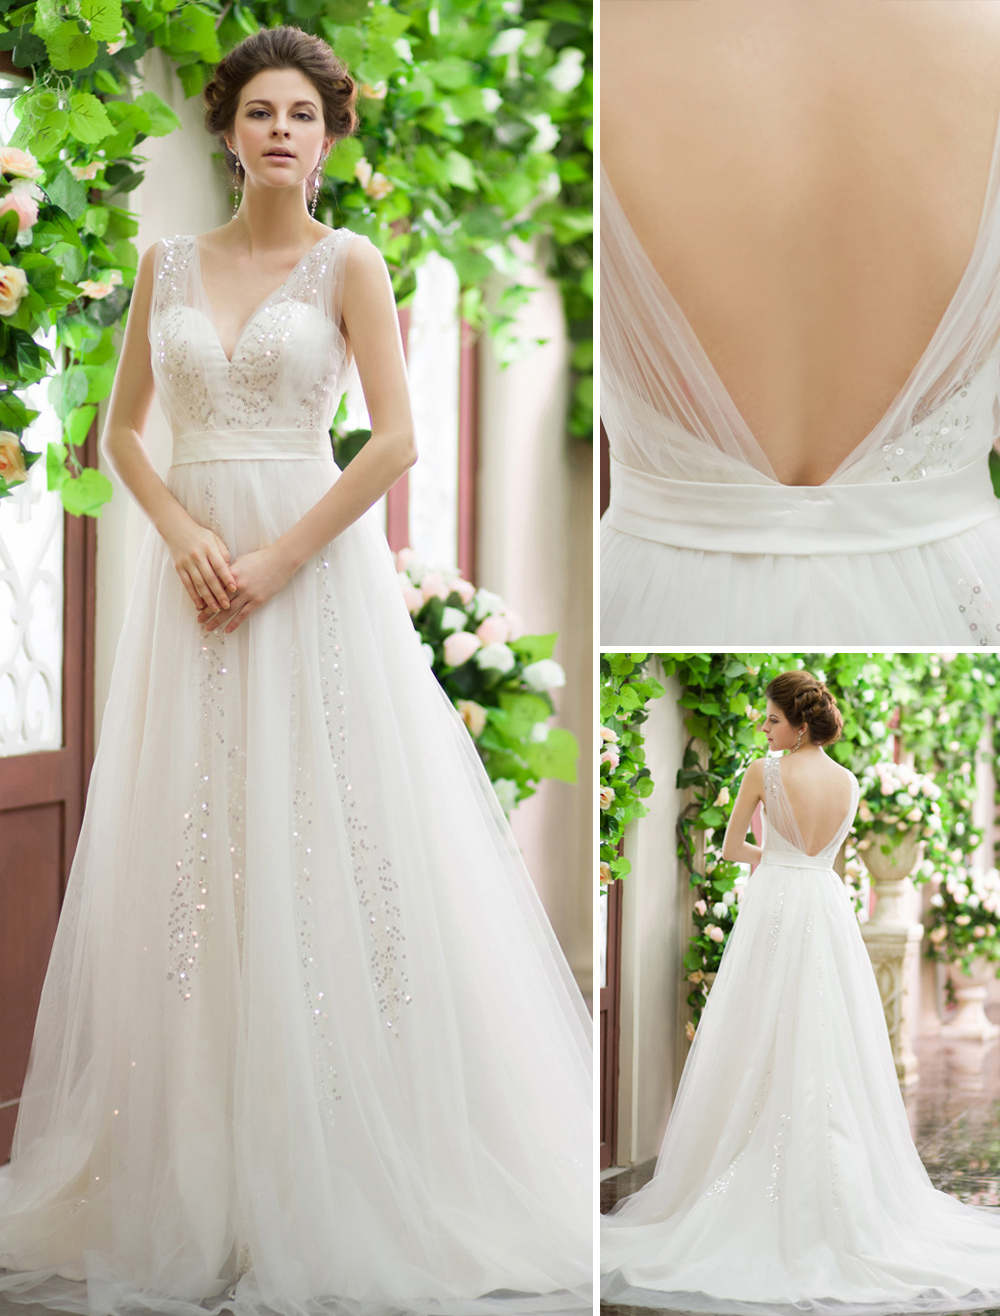 Wedding Dresses Sequin V Neck Bridal Gown Backless Ivory Sash Tulle Court Train Wedding Gown Milanoo